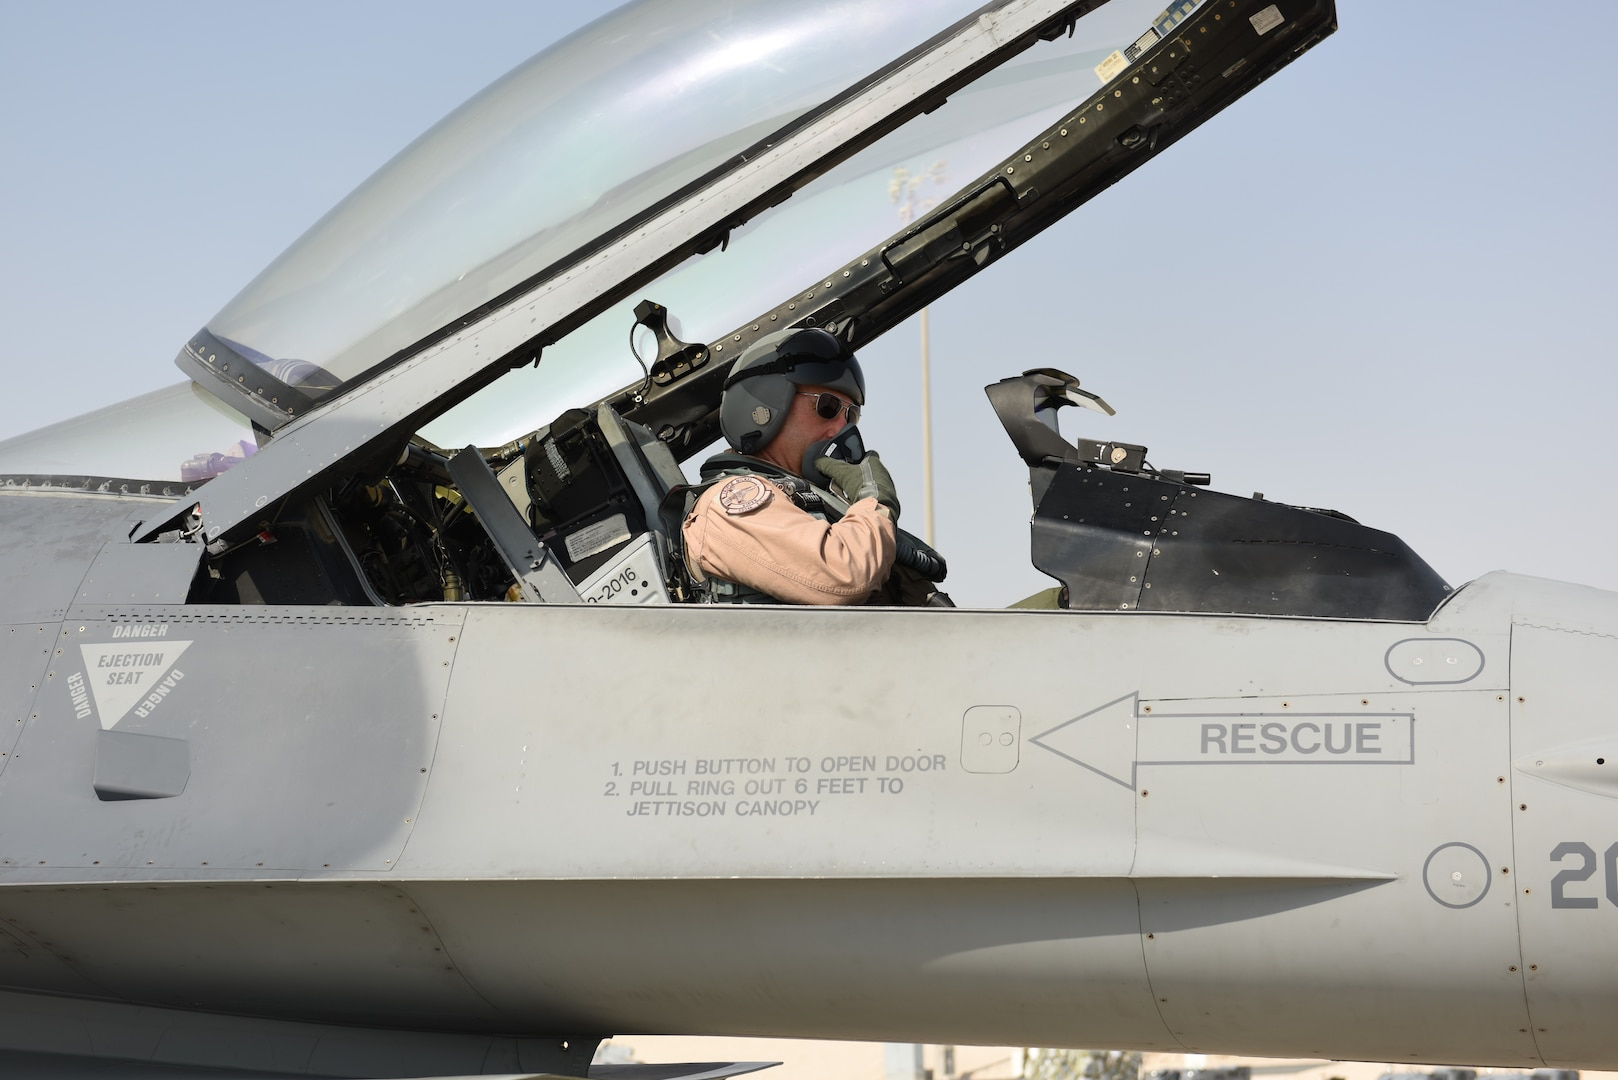 U.S. Air Force Lt. Gen. Joseph Guastella, commander of U.S. Air Forces Central Command and former commander of the 555th Fighter Squadron from October 2003 to July 2005, prepares for his flight in an F-16 Fighting Falcon at Al Udeid Air Base, Qatar Nov. 4, 2019.